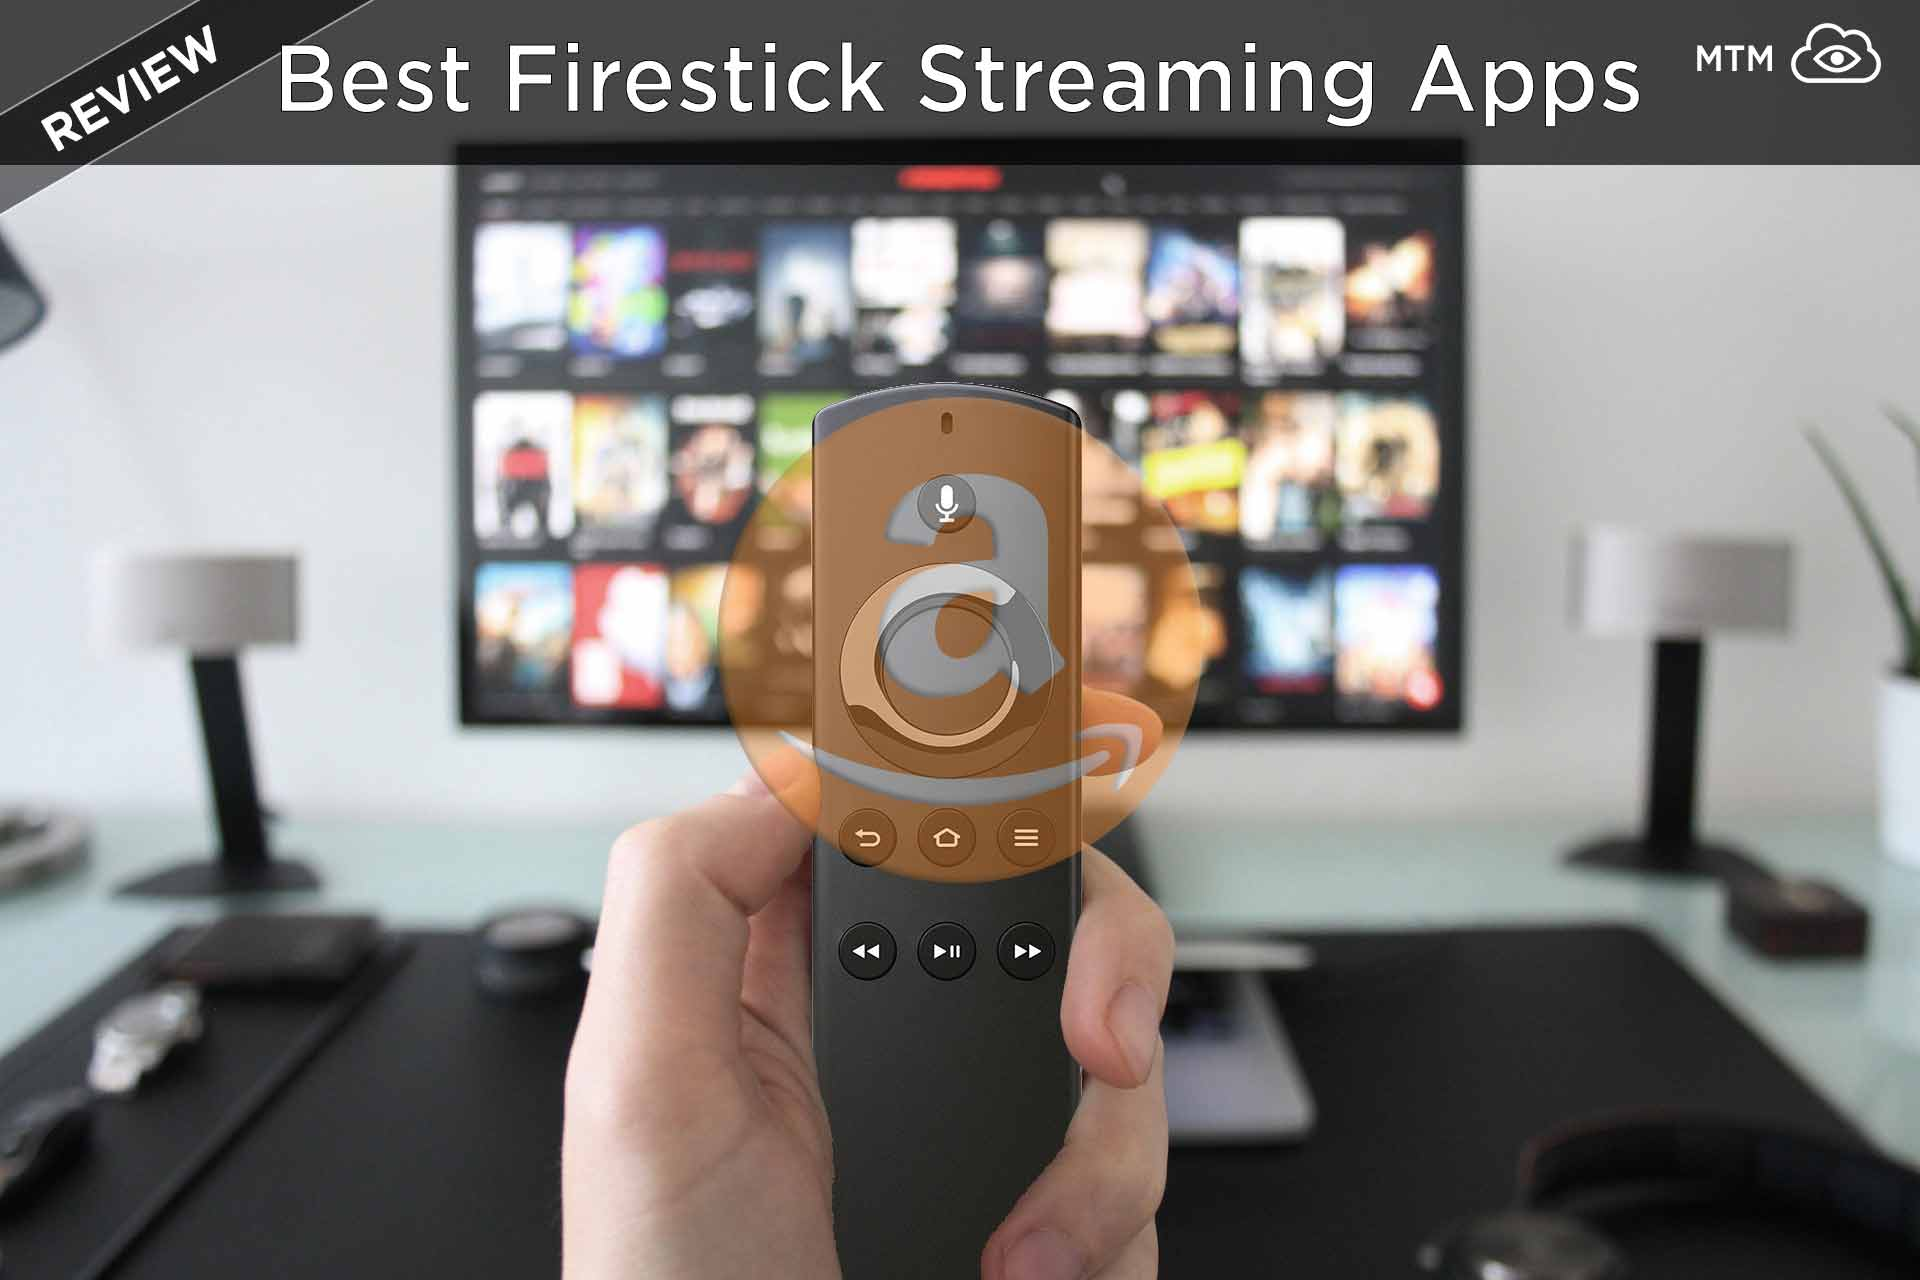 Best Amazon Firestick Streaming Apps List